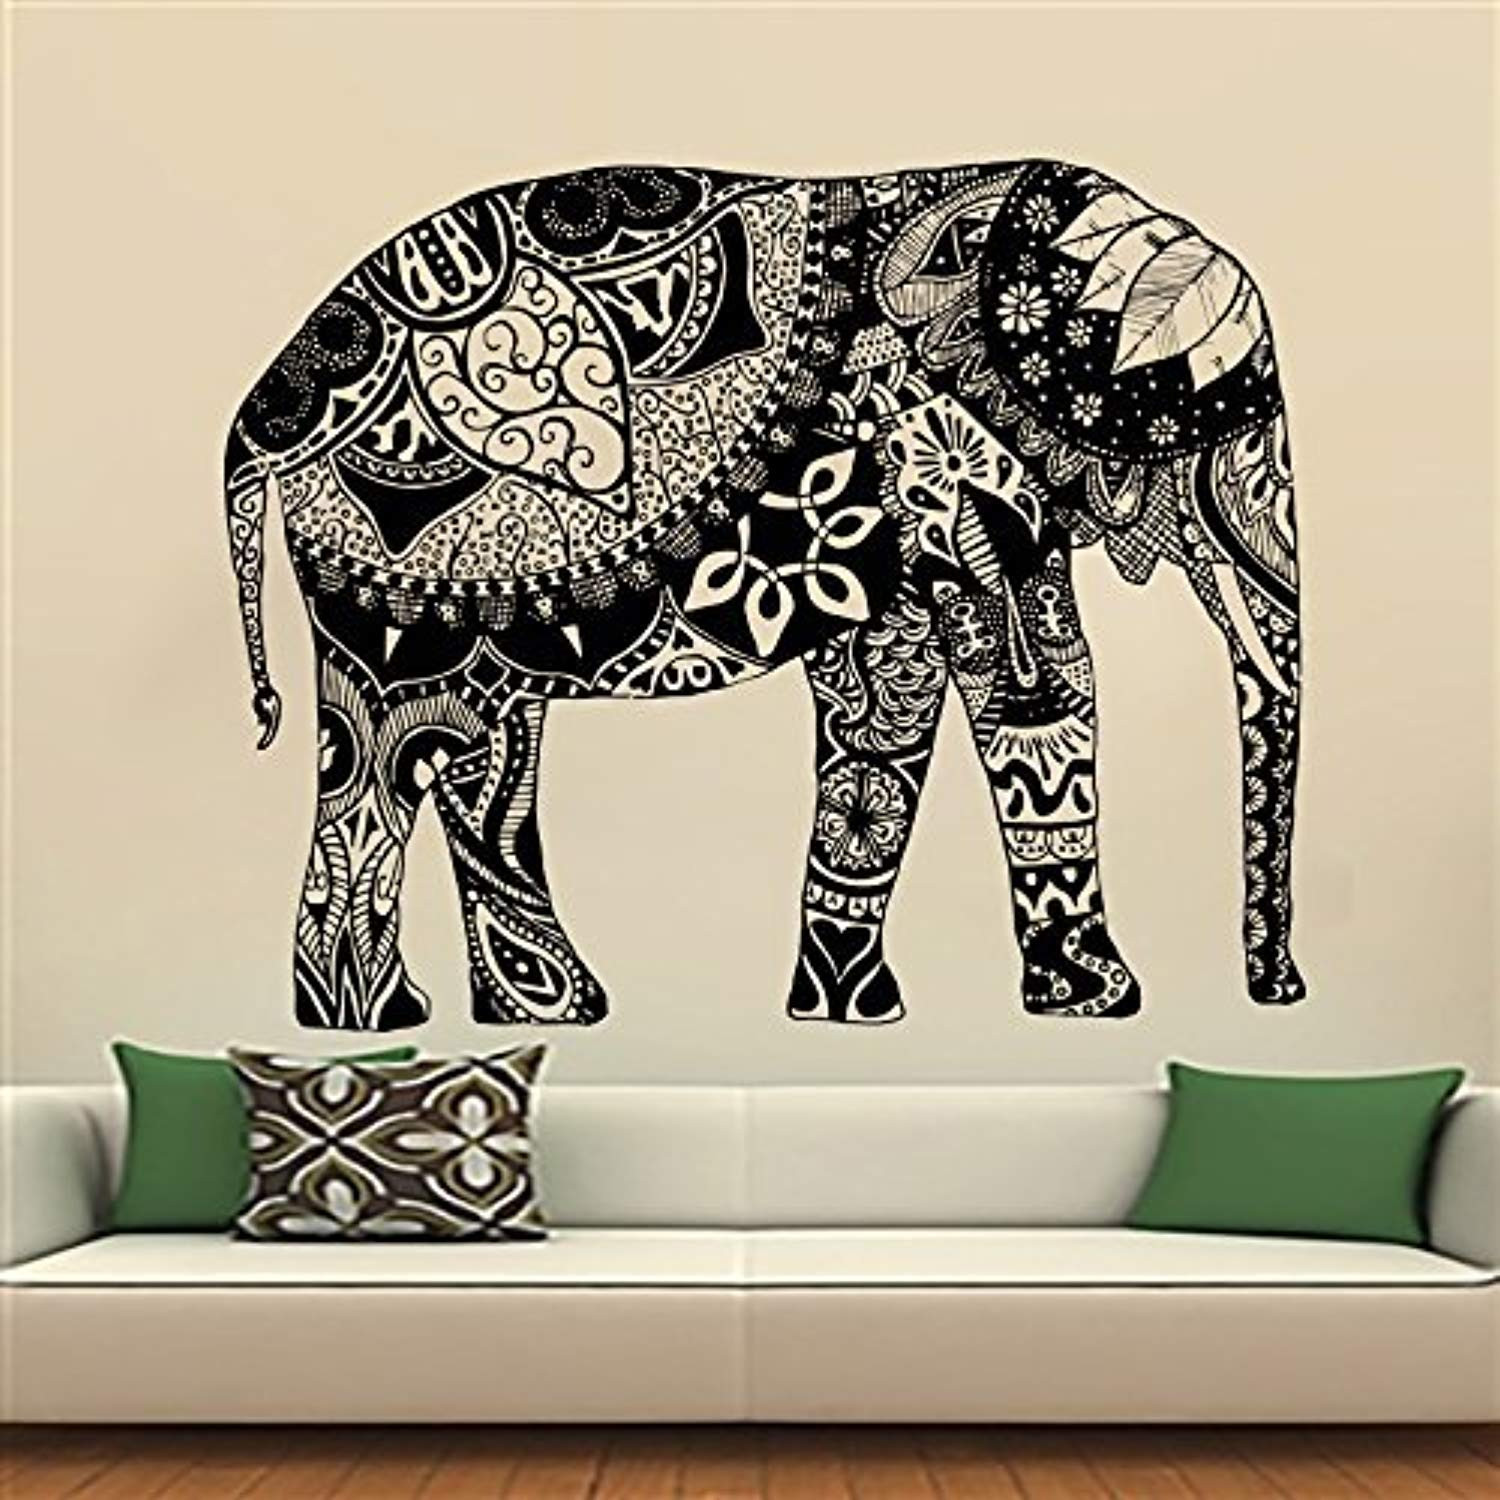 Best ideas about Elephant Wall Art . Save or Pin Elephant Wall Stickers Decals Indian Pattern Decal Vinyl Now.